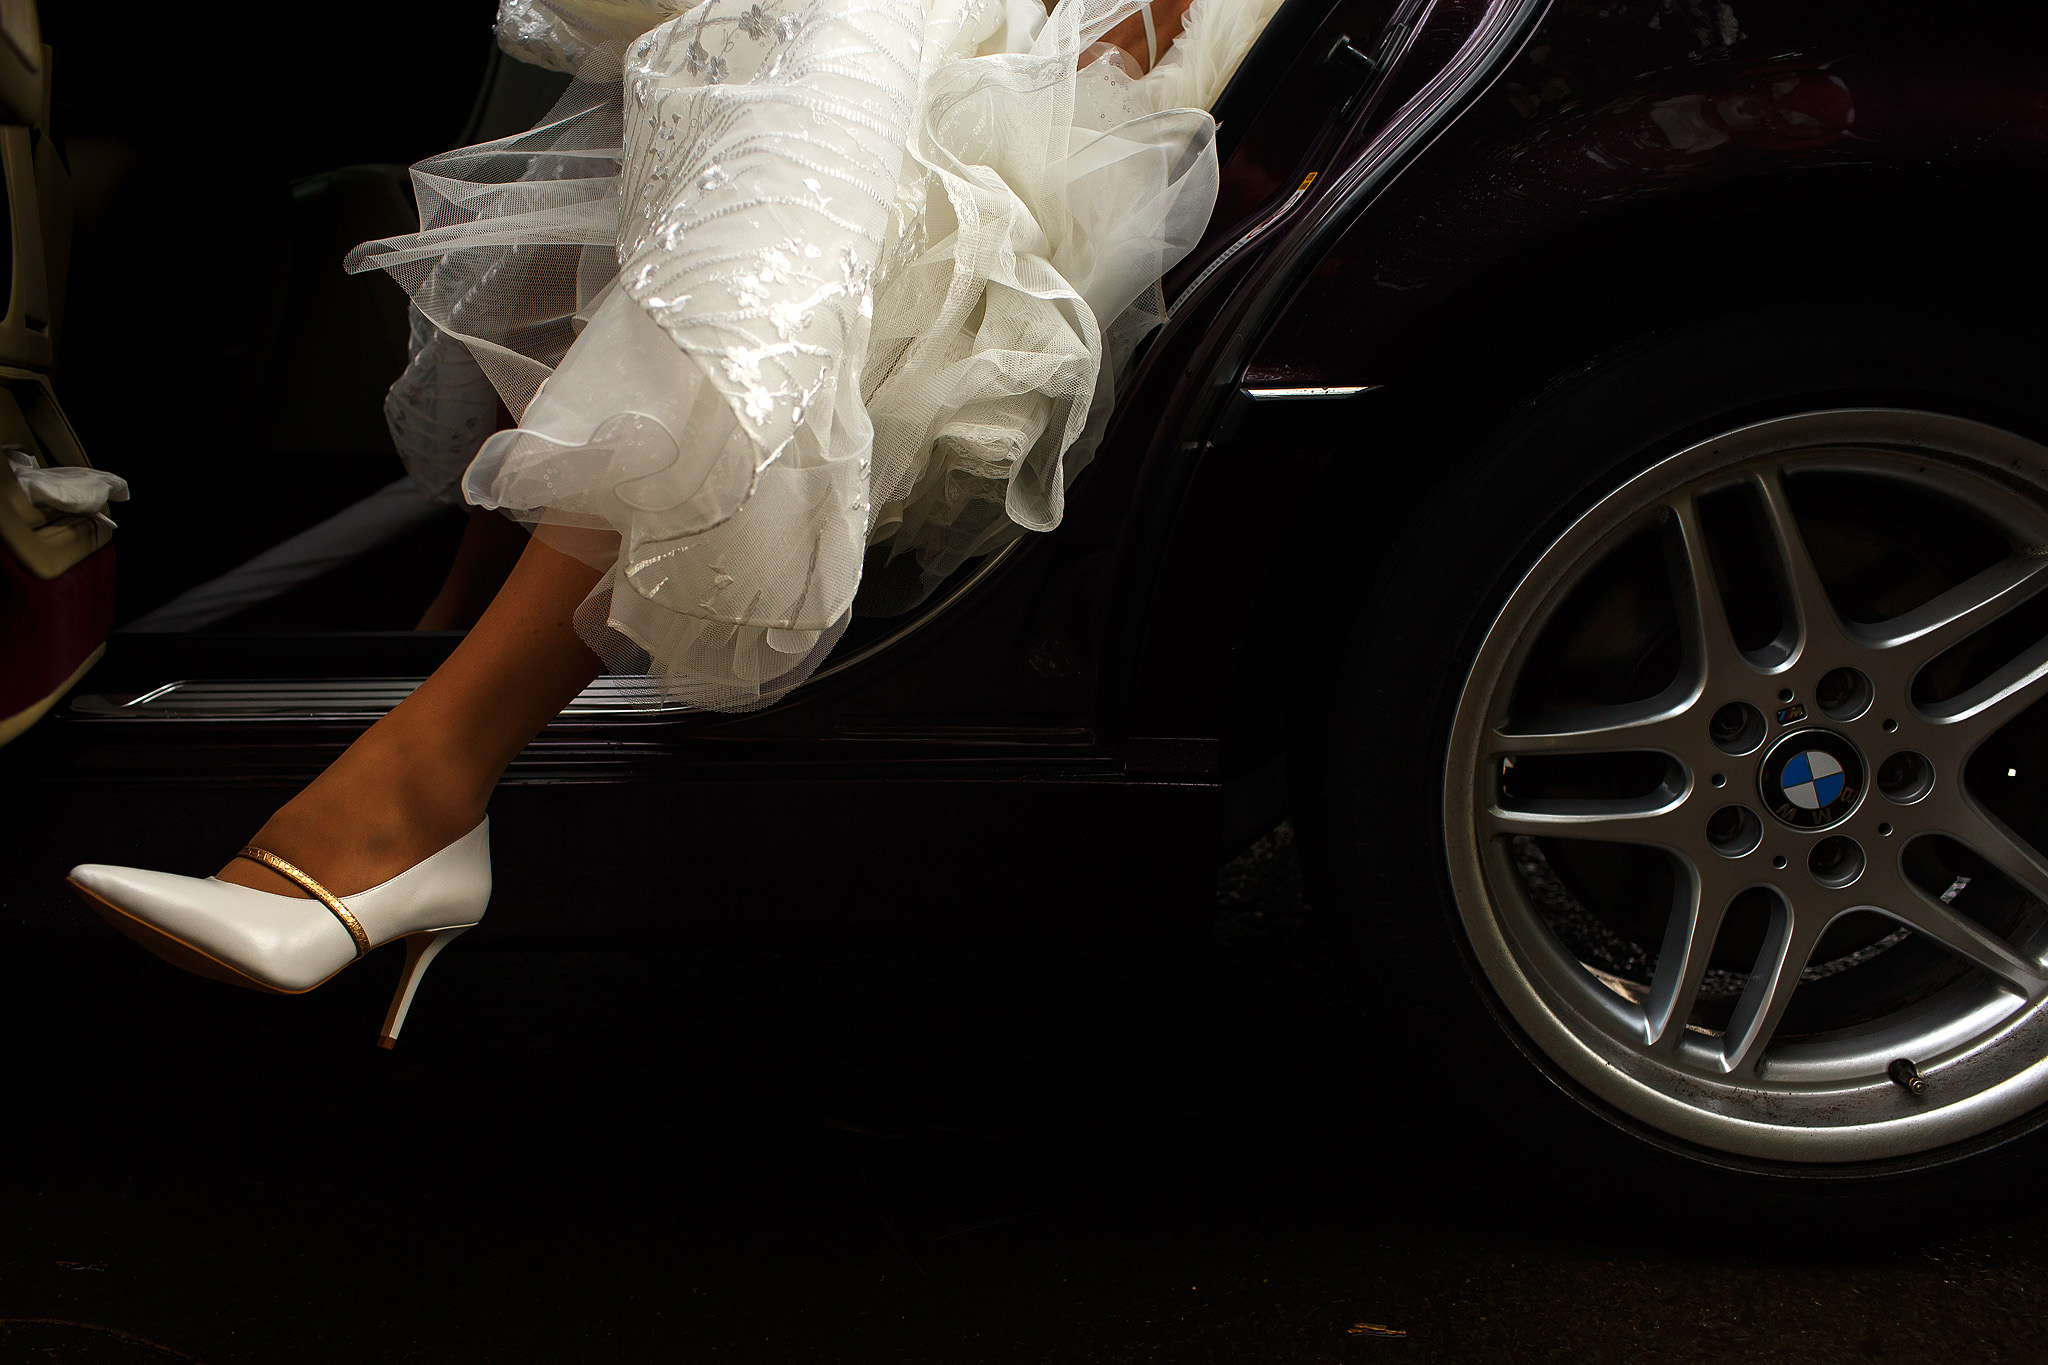 Bride stepping out of black wedding car with just the leg and shoe showing in the image | Nunsmere Hall Wedding Photography